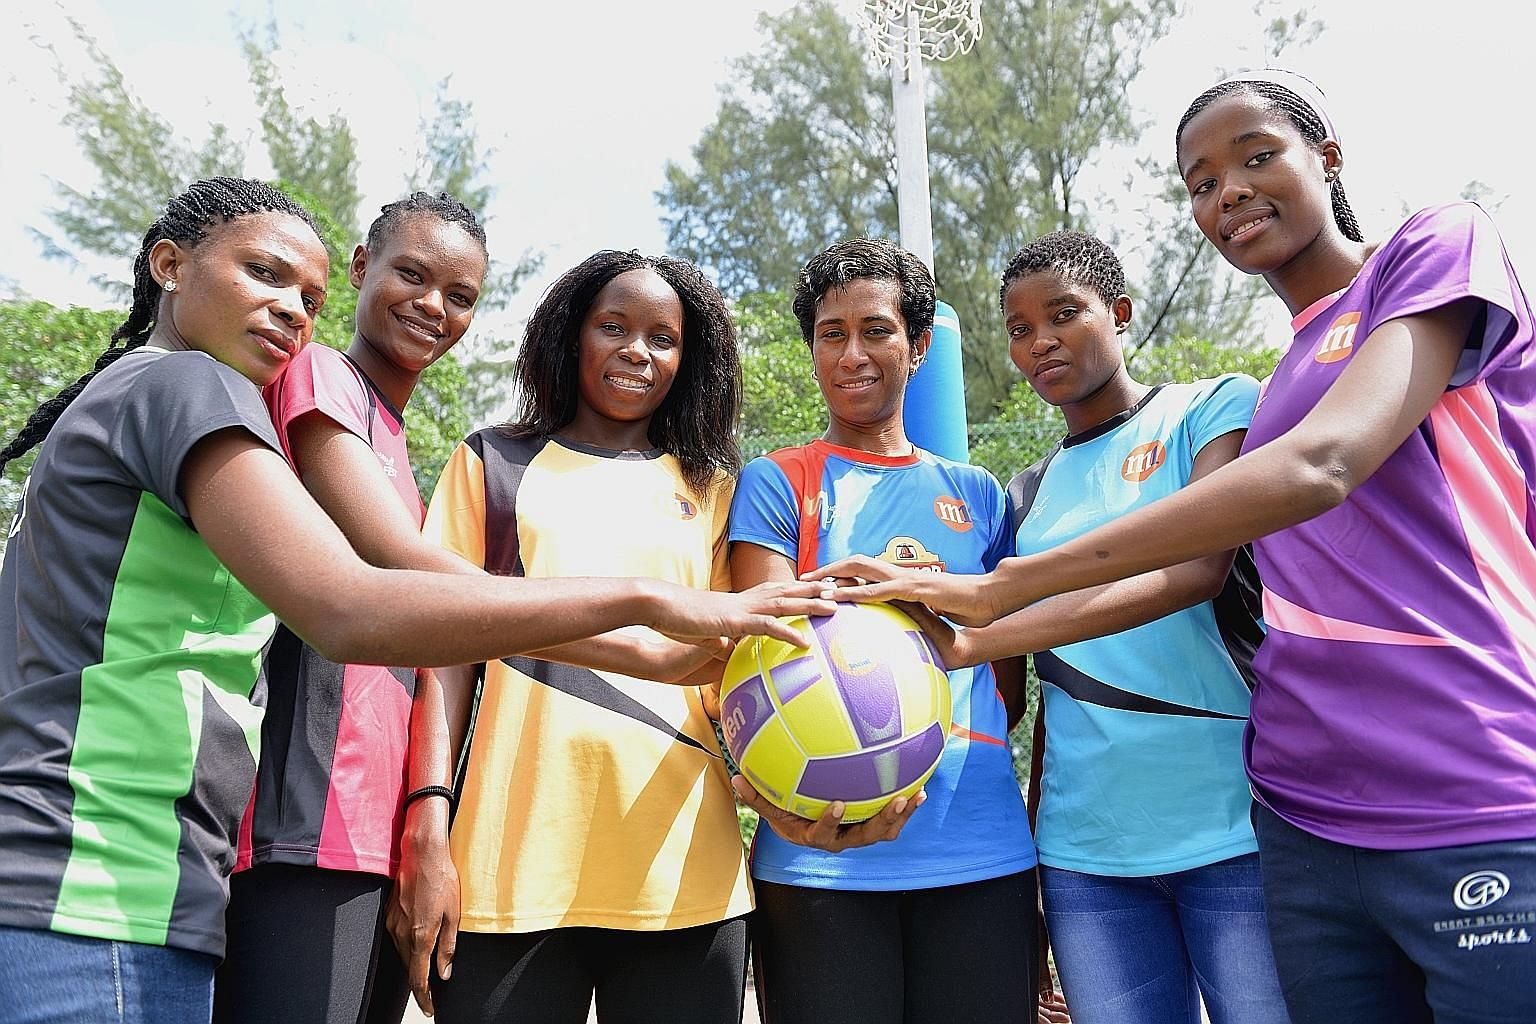 From left: The international players in Singapore's Netball Super League this year are Sophie Komba (Magic Marlins), Lilian Sylidion (Blaze Dolphins), Irene Kanile (Fier Orcas), Alesi Waqa (Mission Mannas), Hildah Binang (Tiger Sharks) and Letang Mog